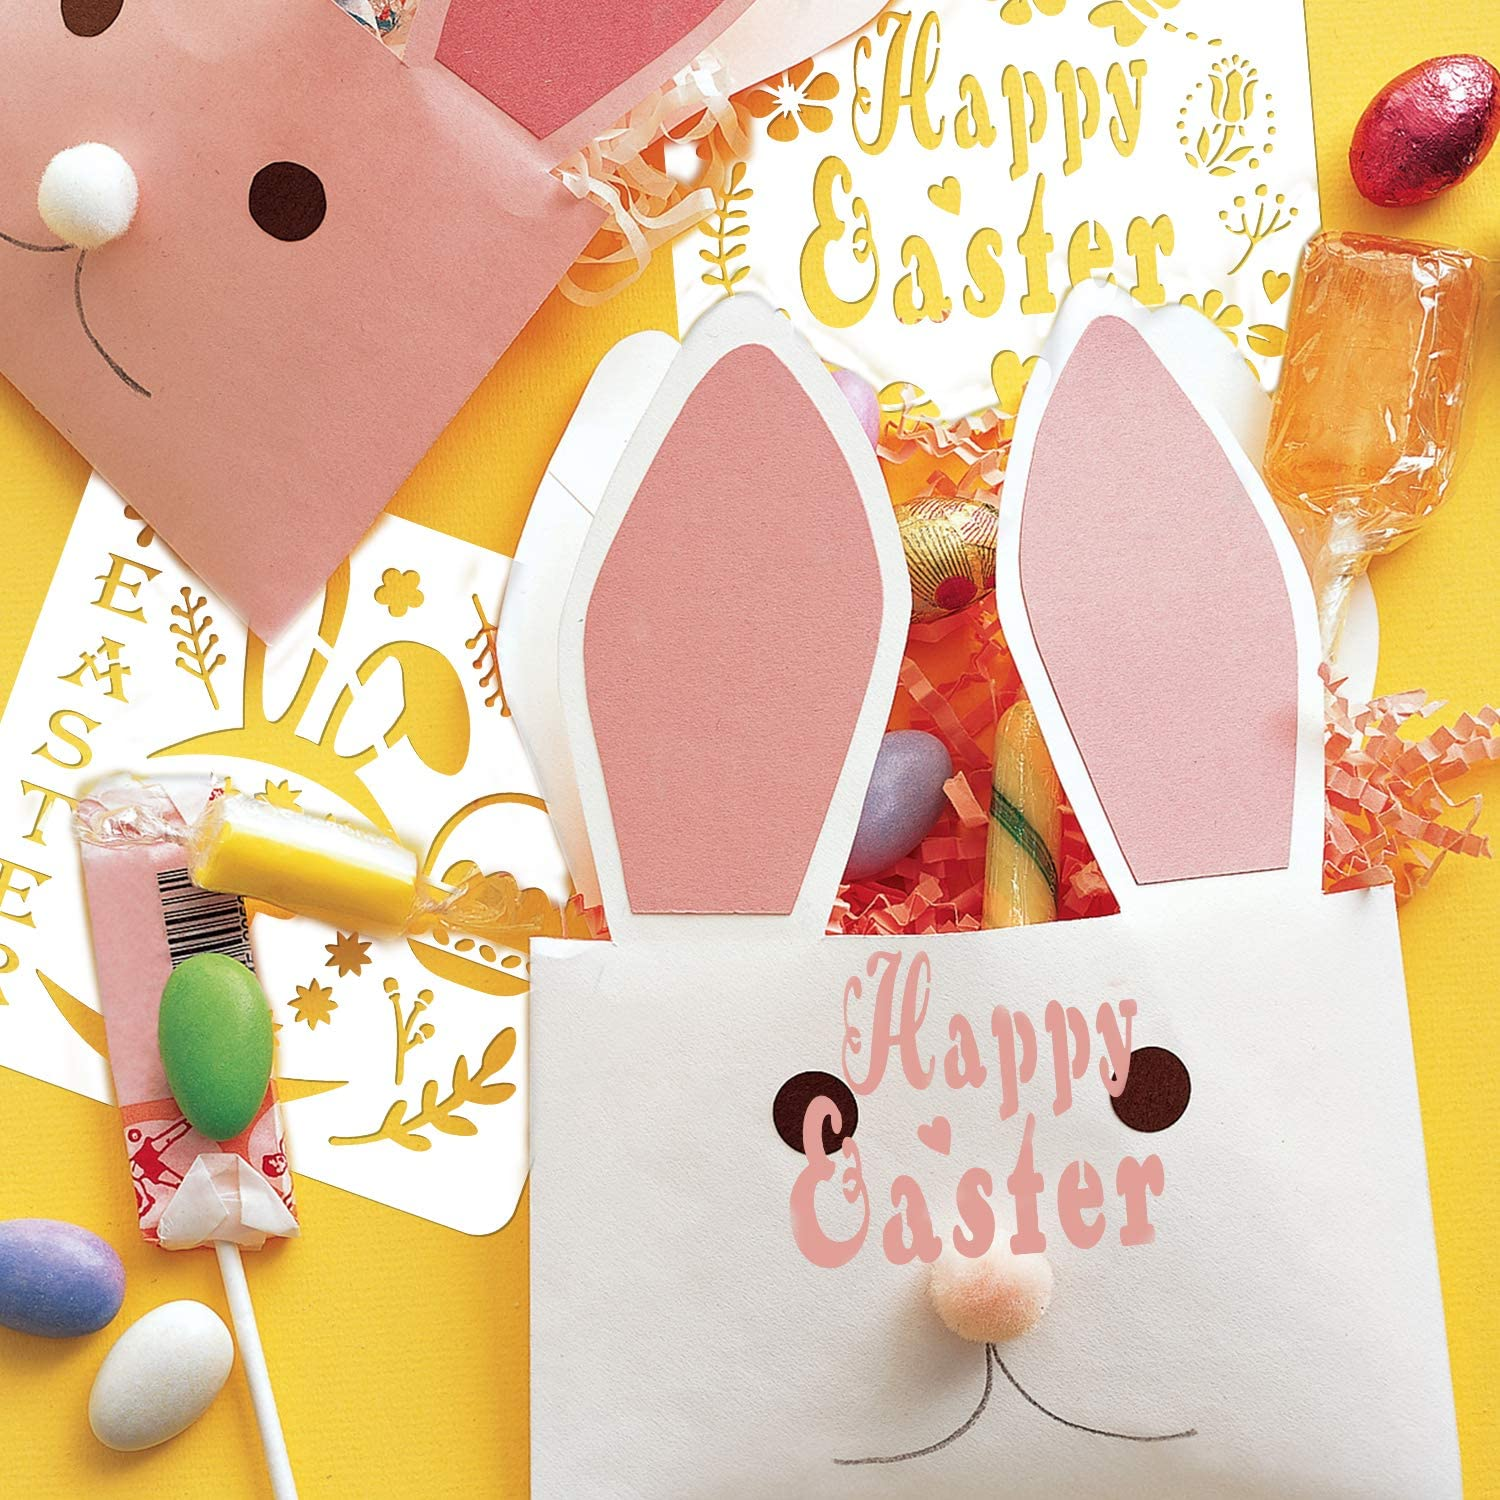 Washable Plastic Painting Stencils Easter Decorations Templates Eggs Bunny Stencils for Easter Party Kids Gifts Painting On Wood Cards Window Crafts Qpout 16Pack Easter Drawing Stencils Templates